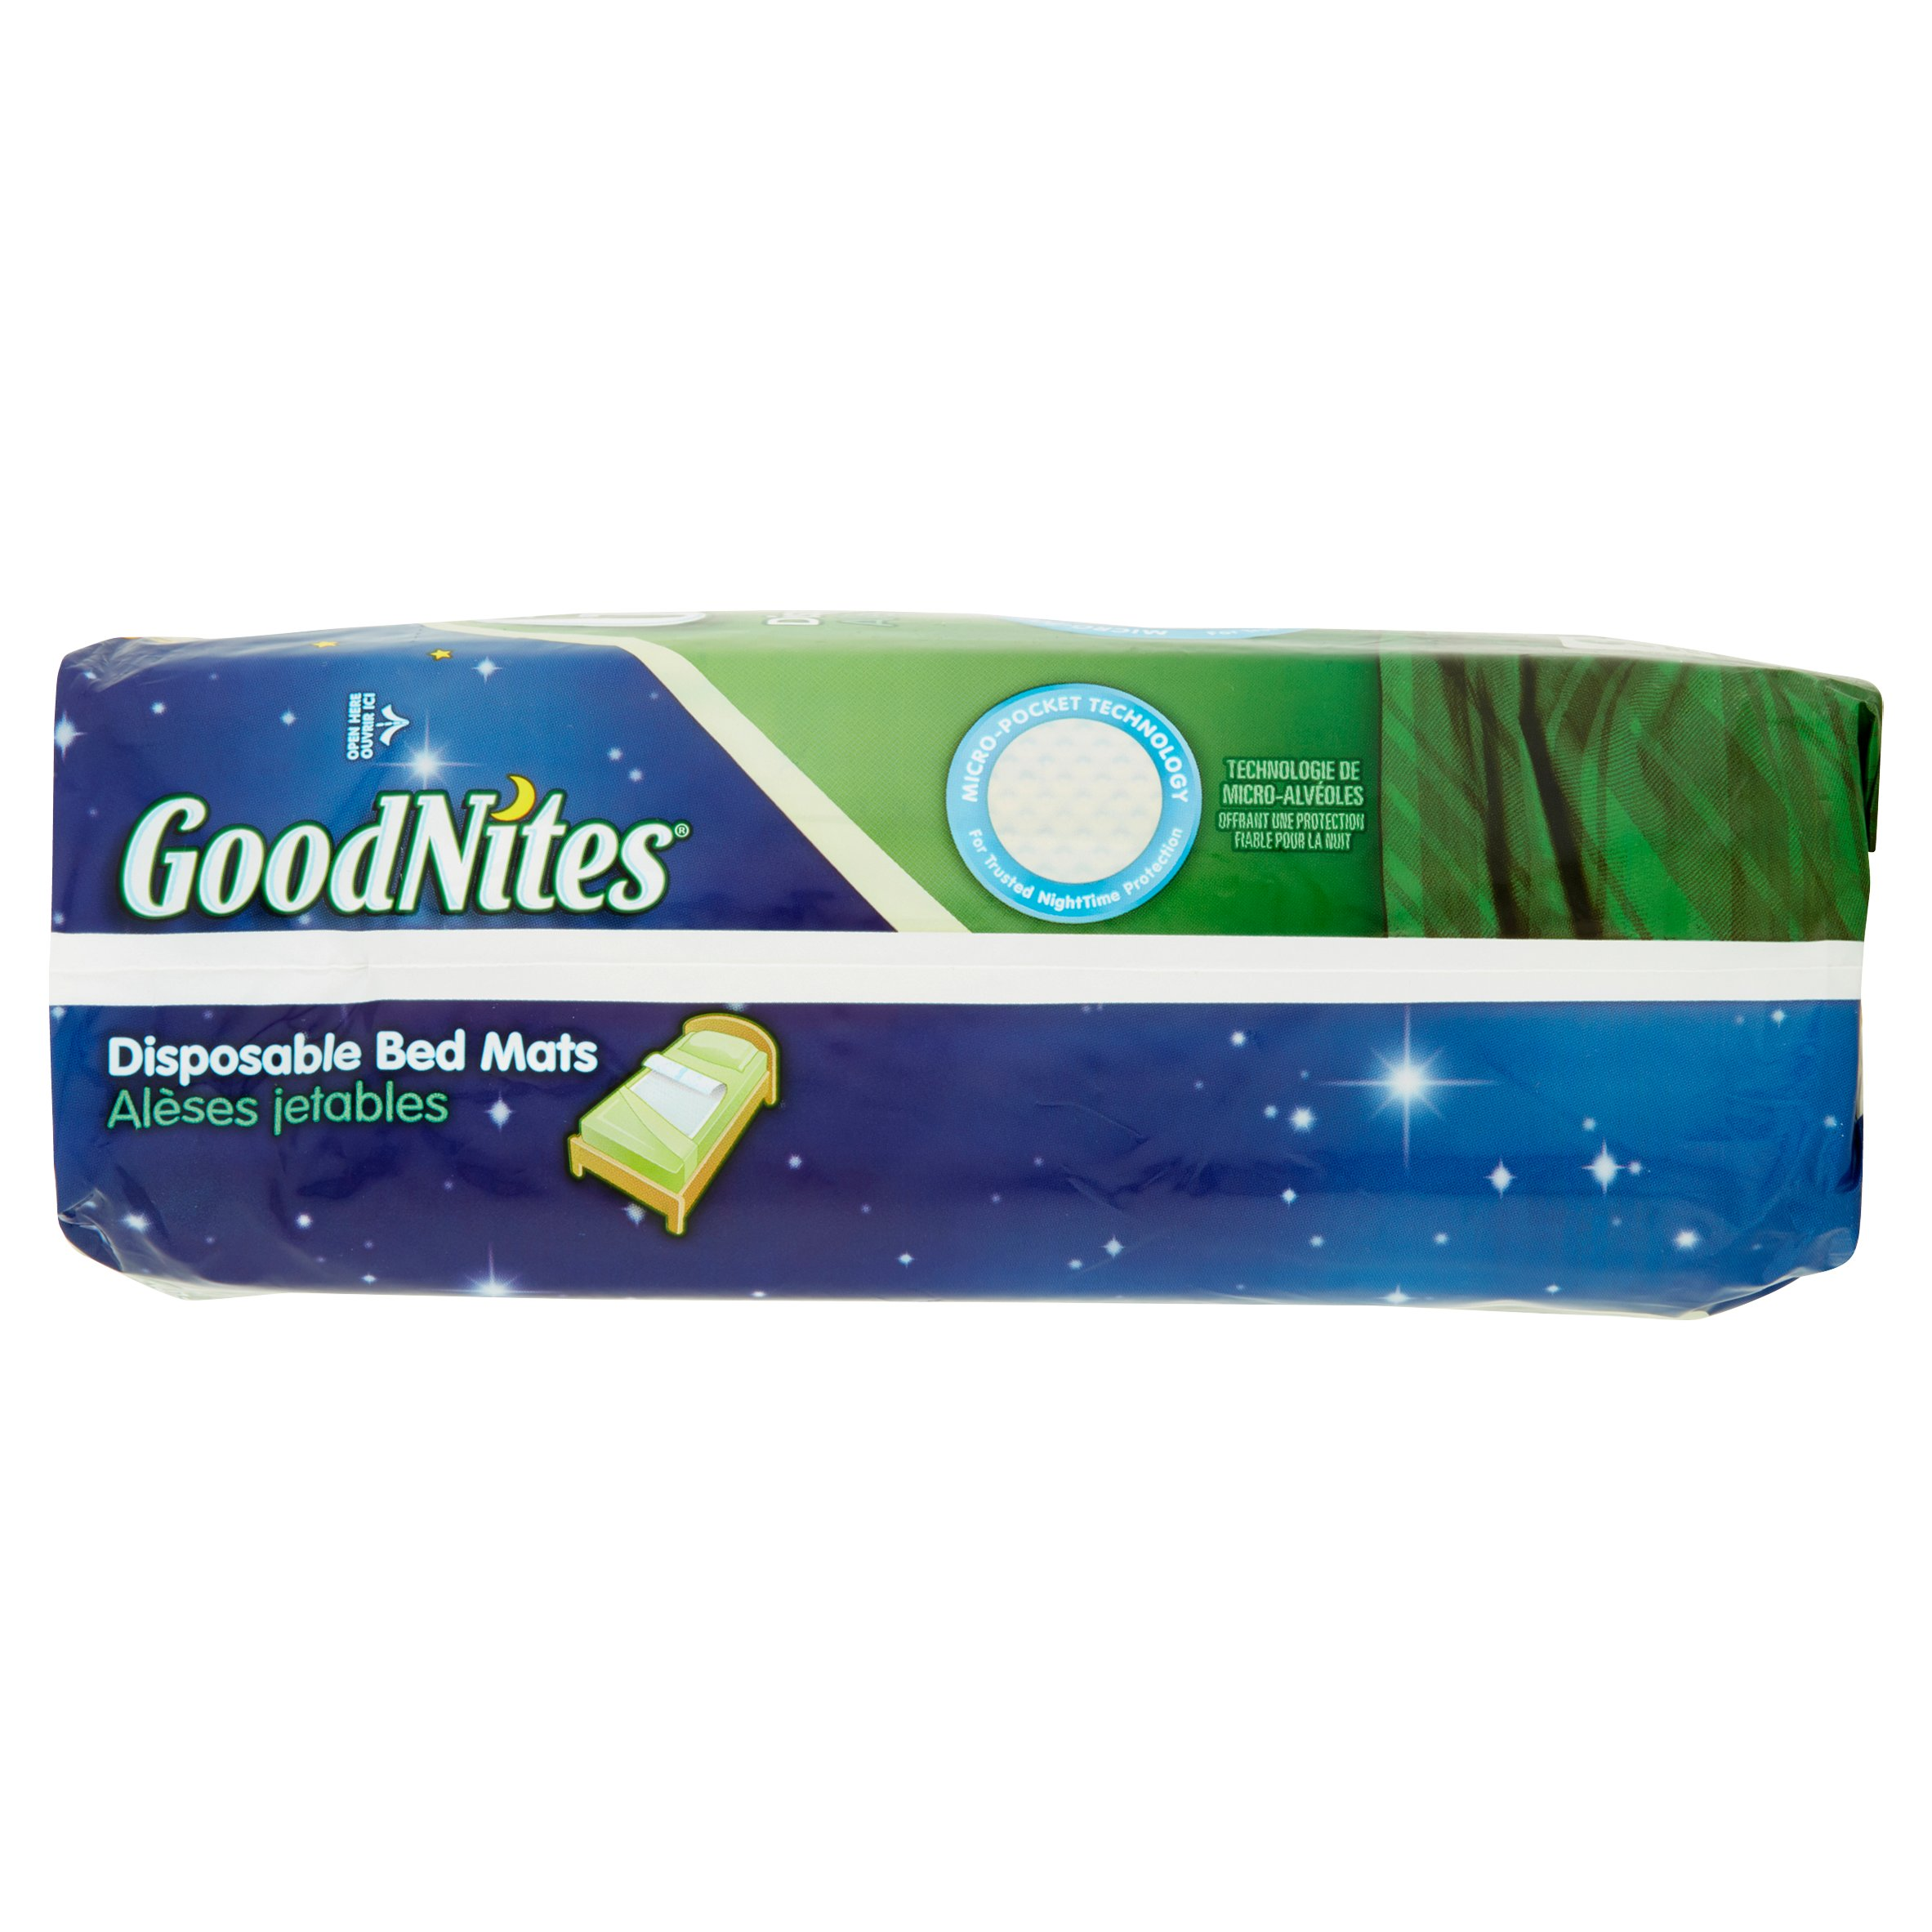 goodnites disposable bed mats 9 count walmart com